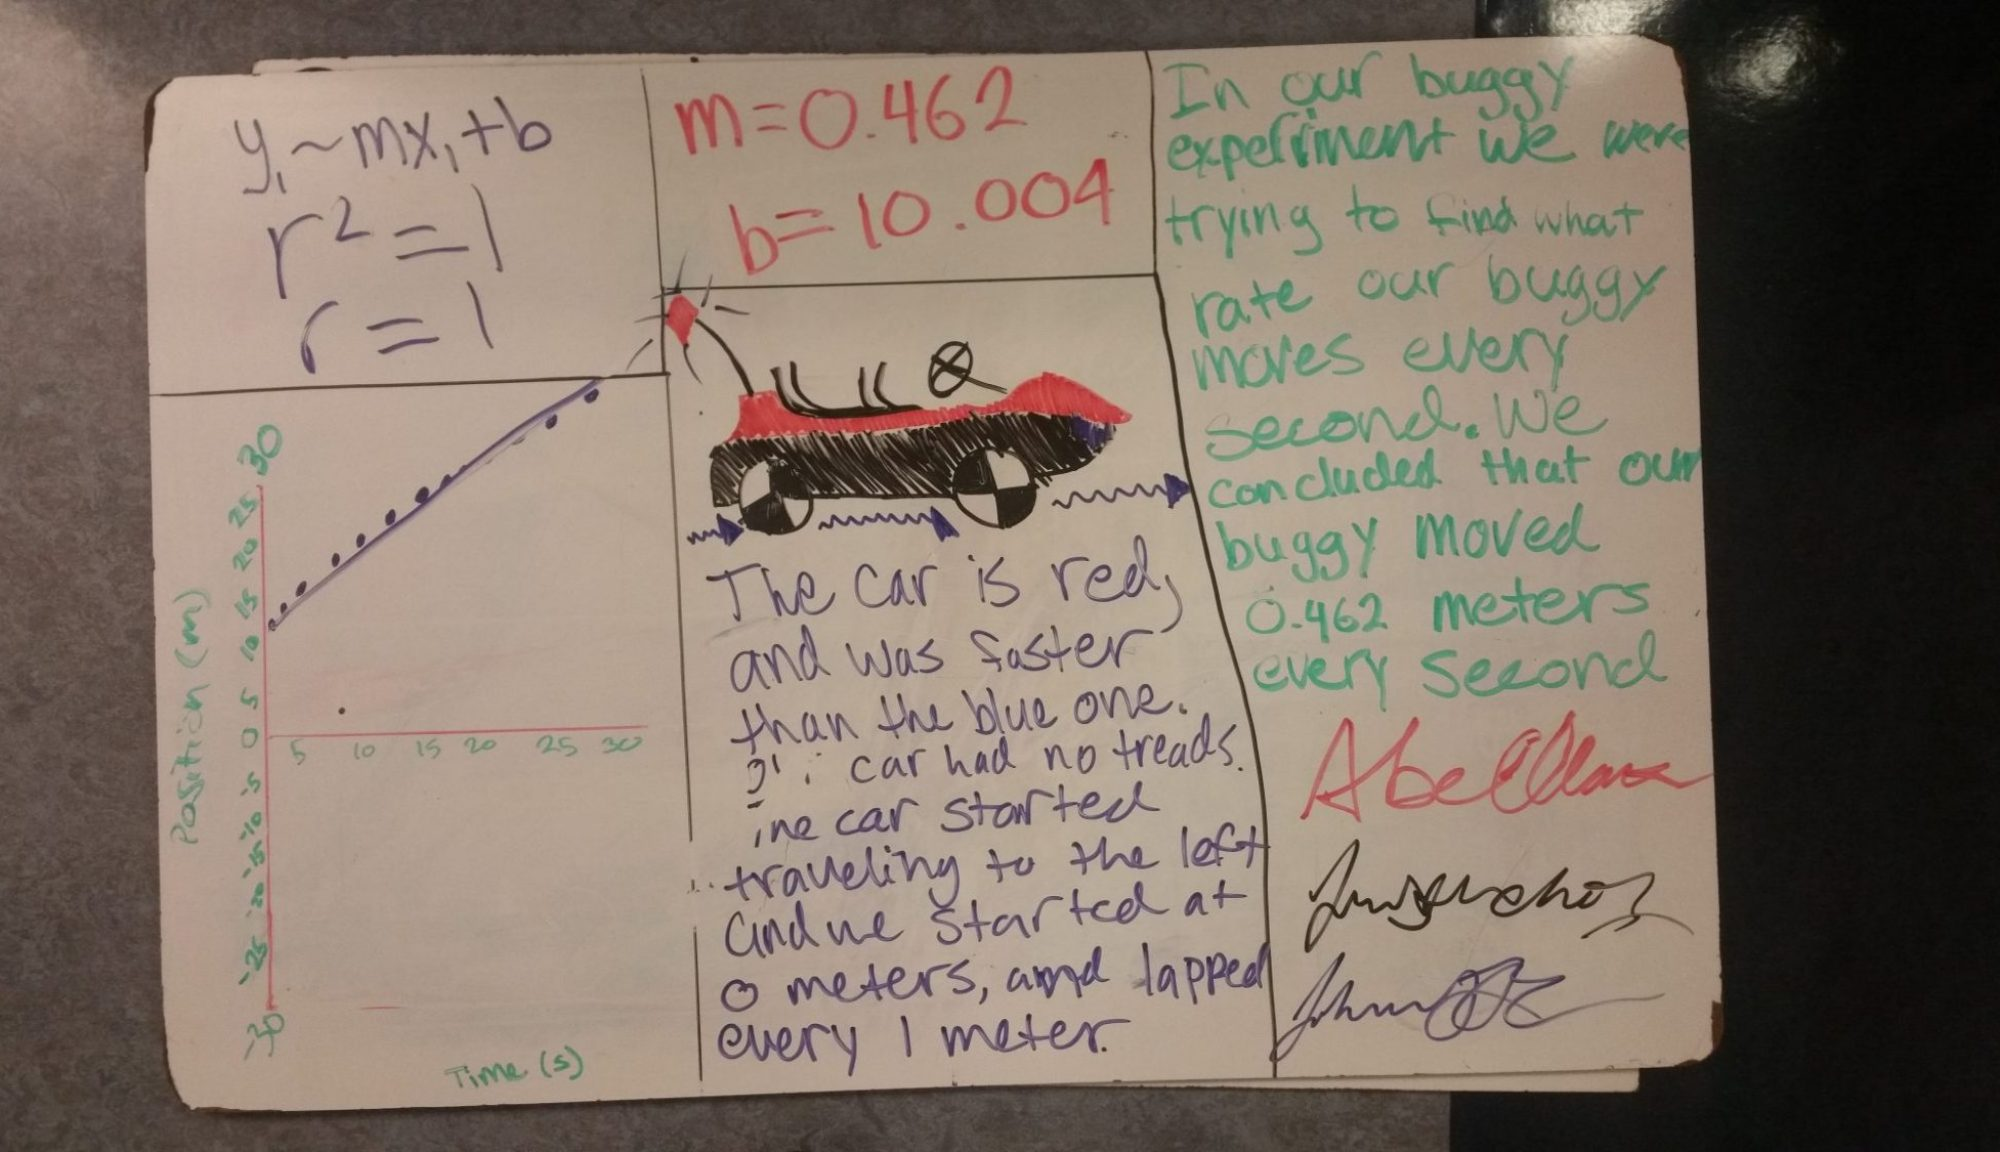 photo of another example whiteboard